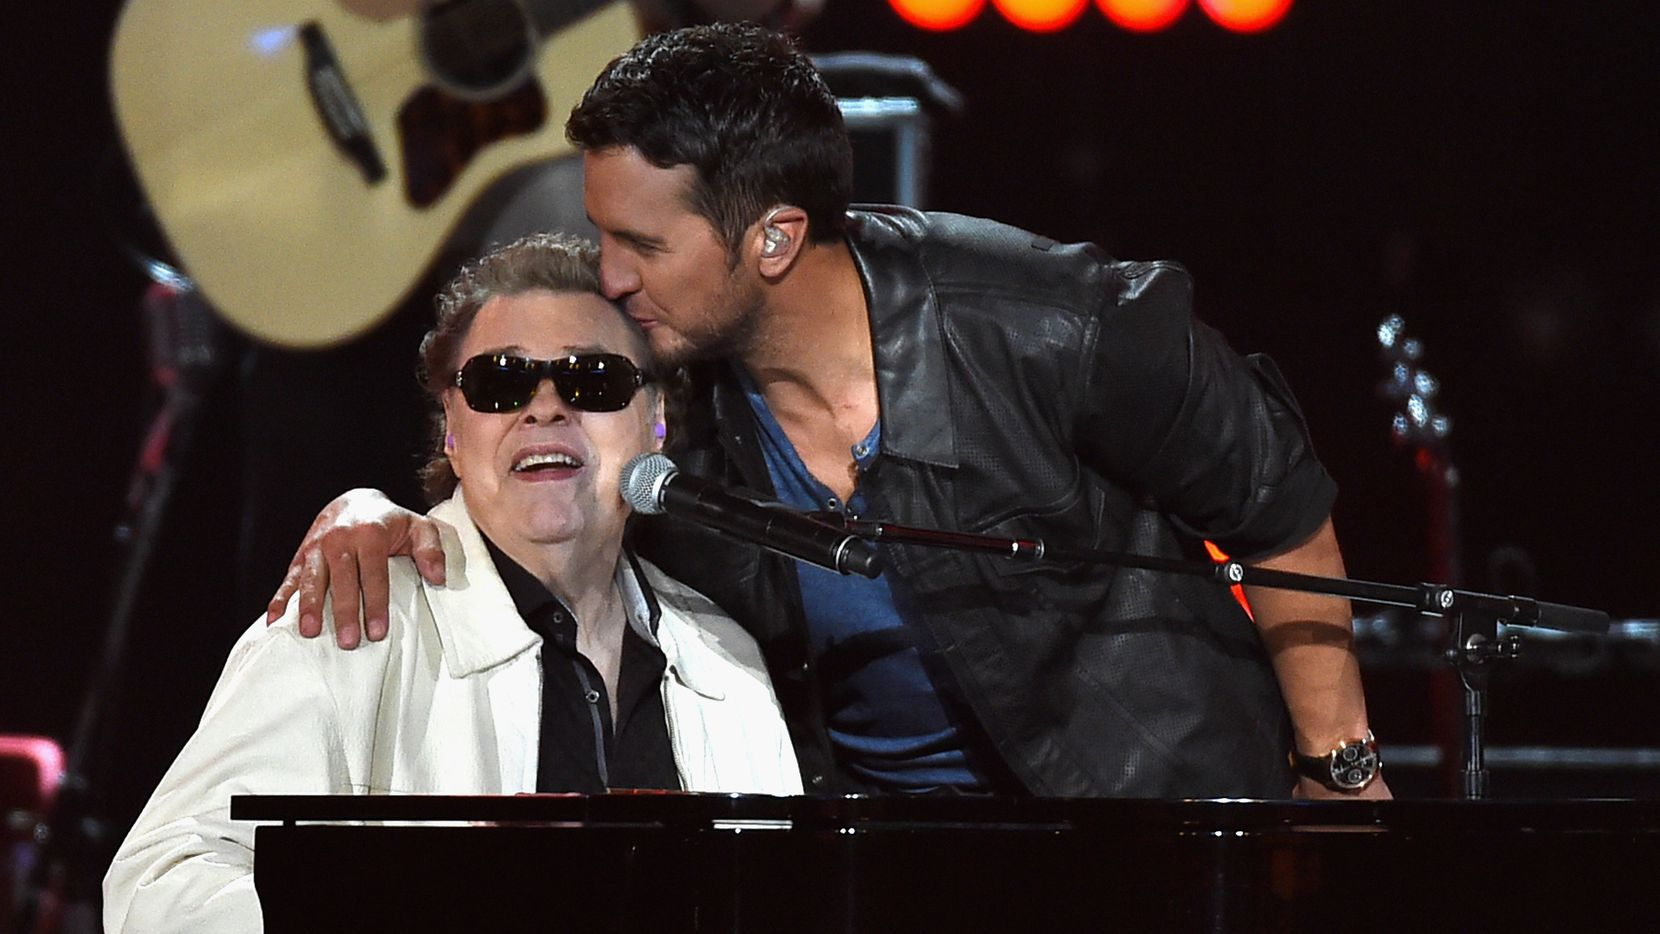 Singers Ronnie Milsap (left) and Luke Bryan perform onstage during ACM Presents: Superstar Duets at Globe Life Park on April 17, 2015 in Arlington, Texas.